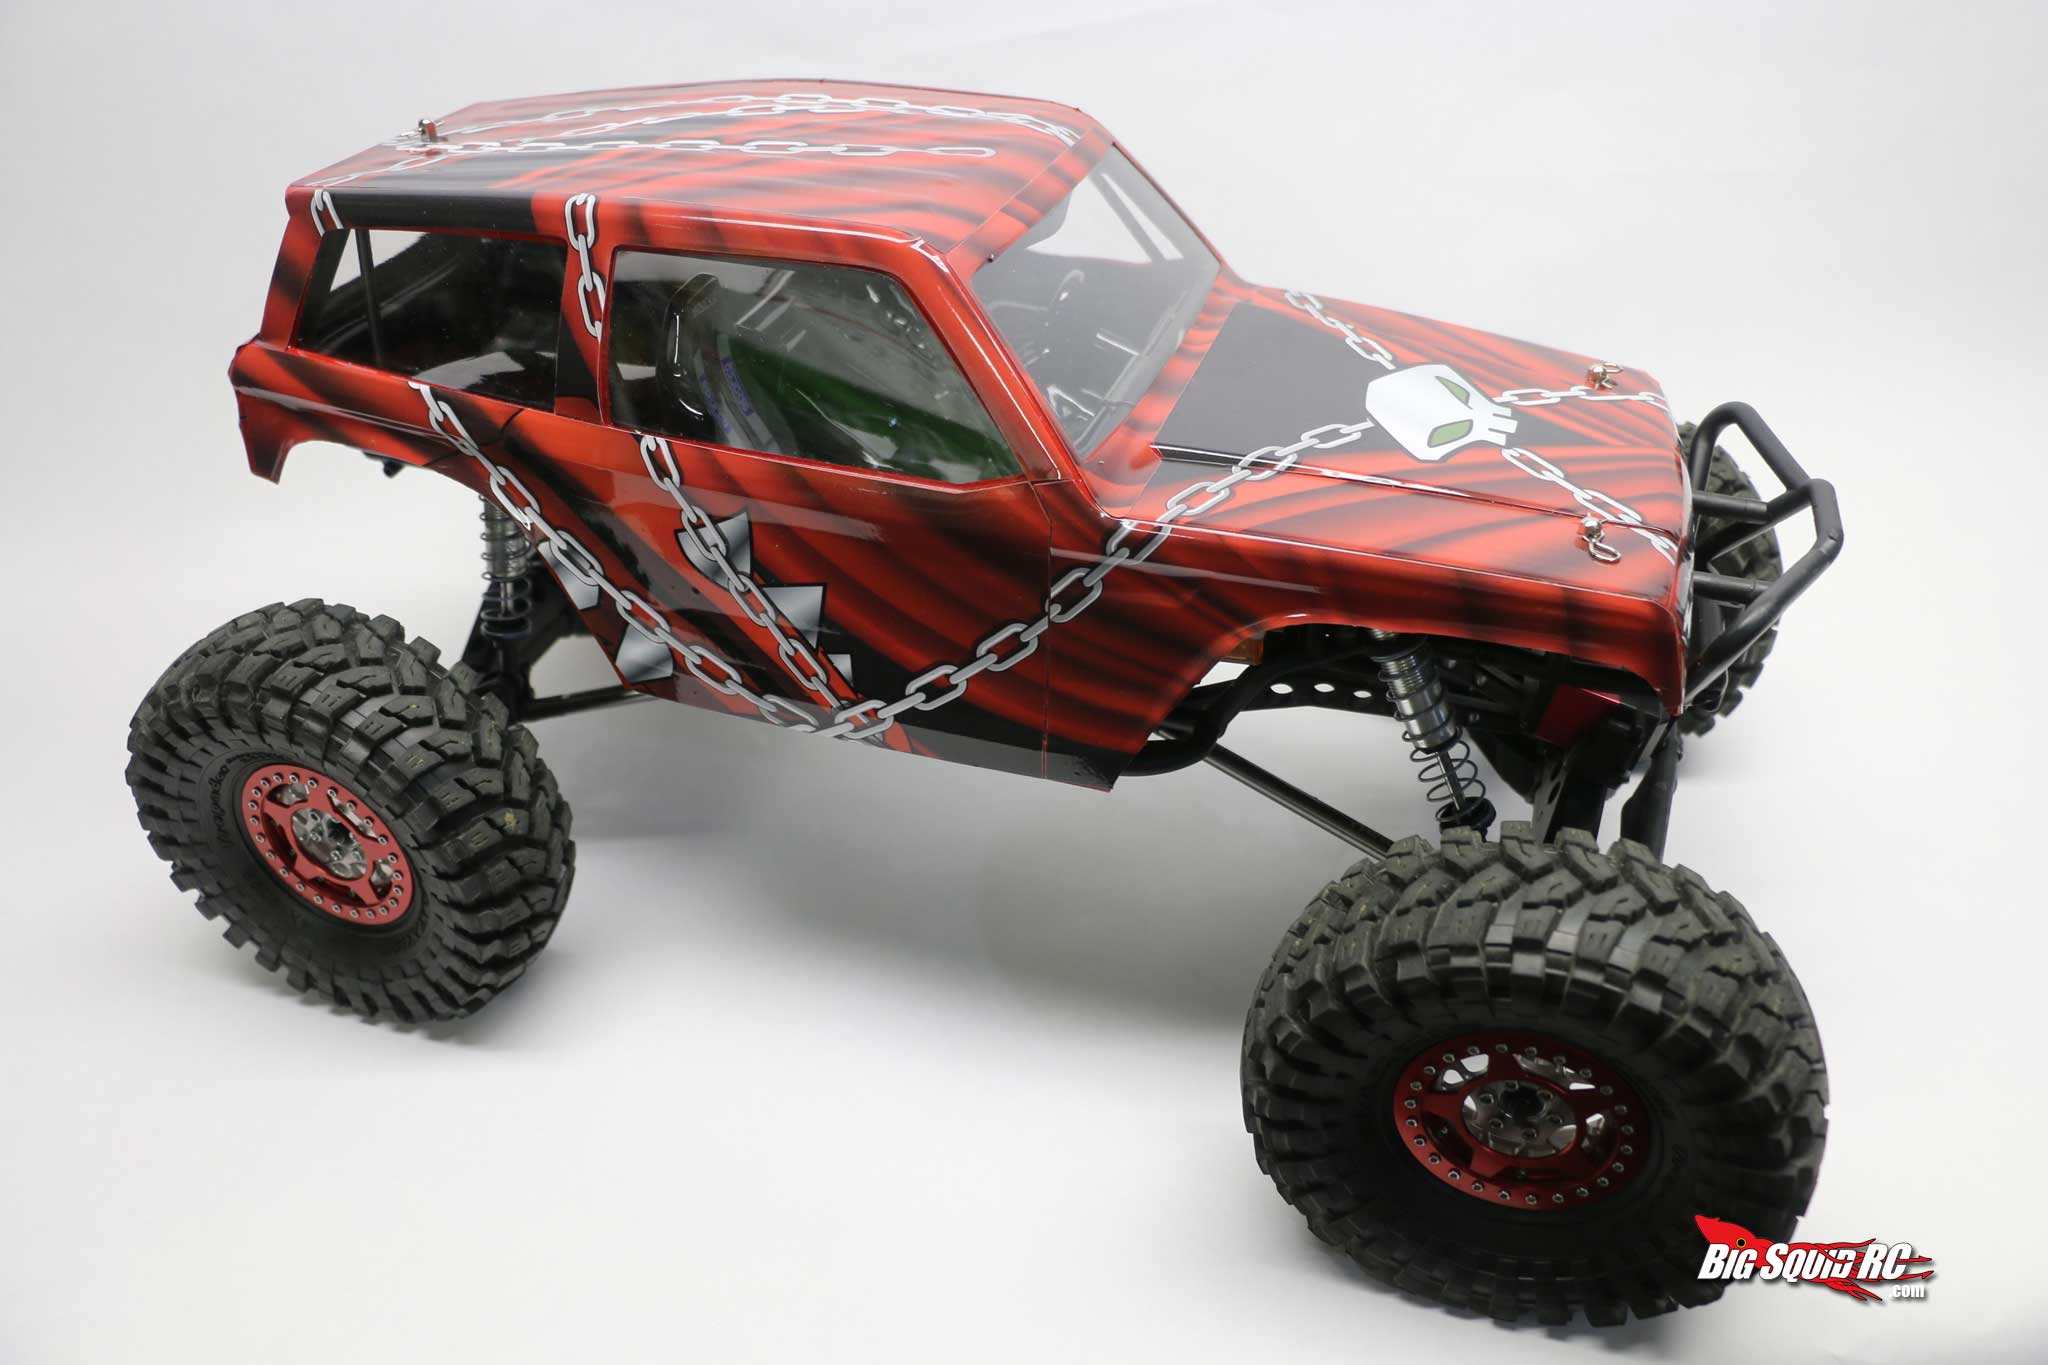 Axial Wraith Spawn Let The Upgrades Begin 171 Big Squid